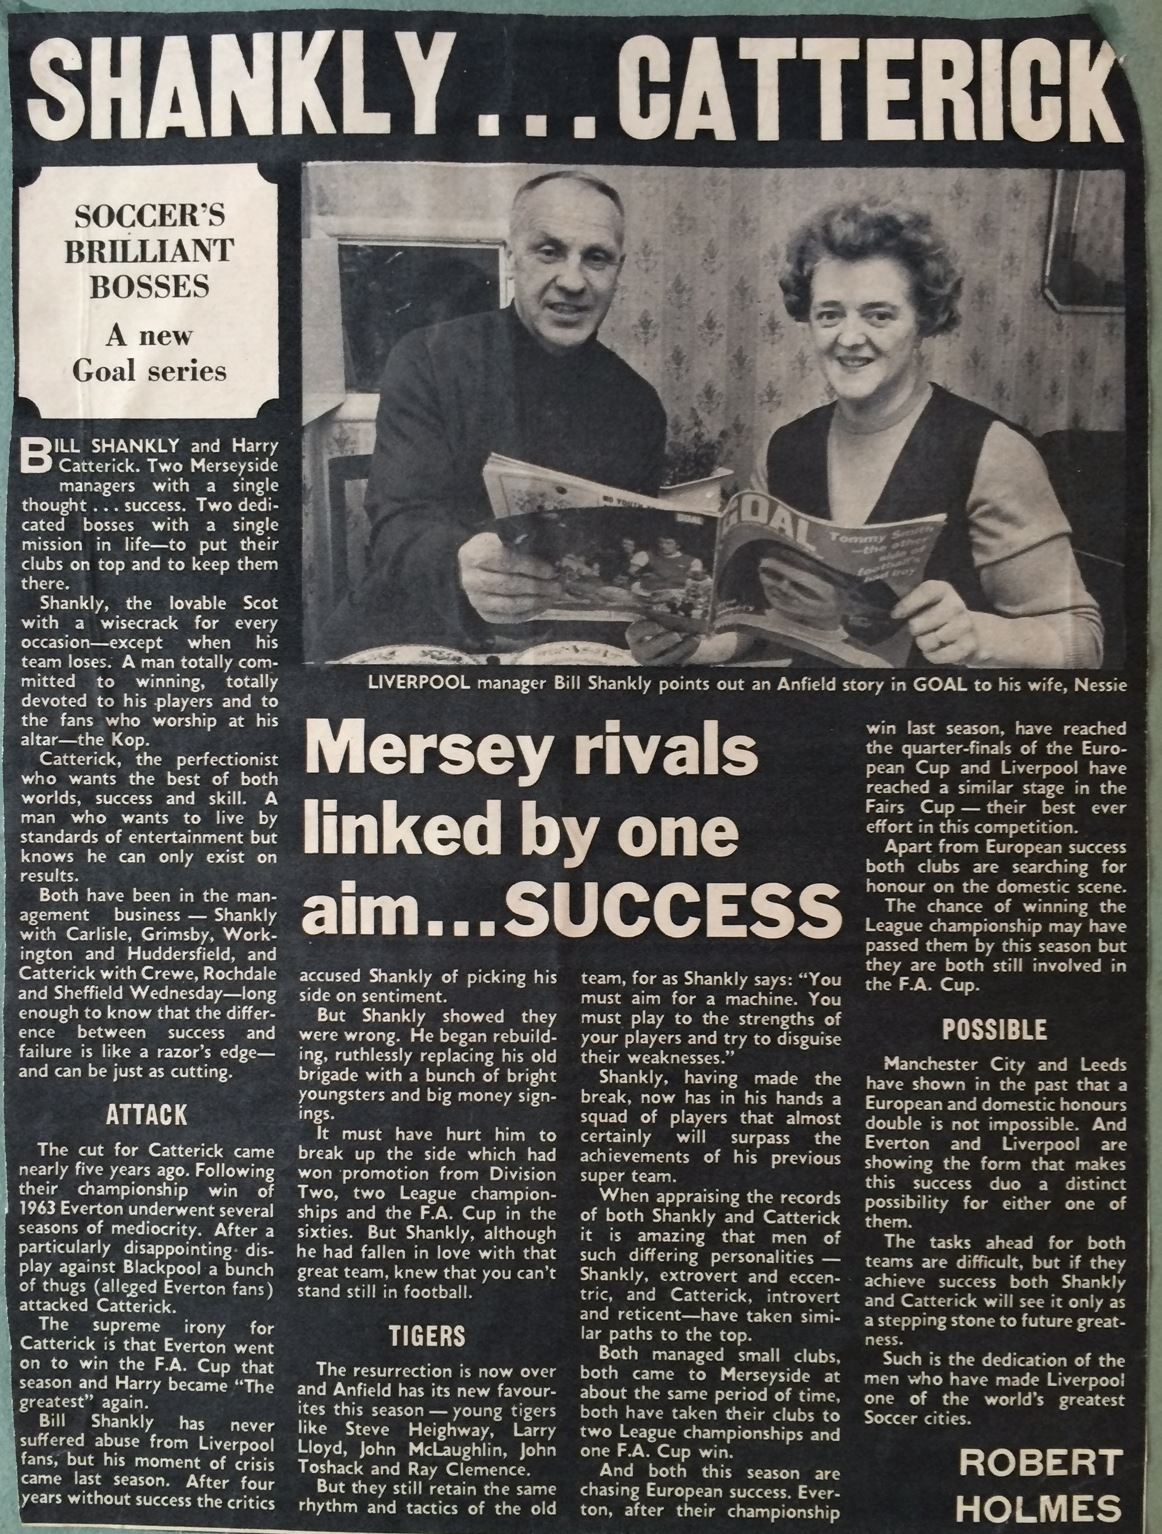 Shankly and Catterick are Soccer's superb bosses - 1971